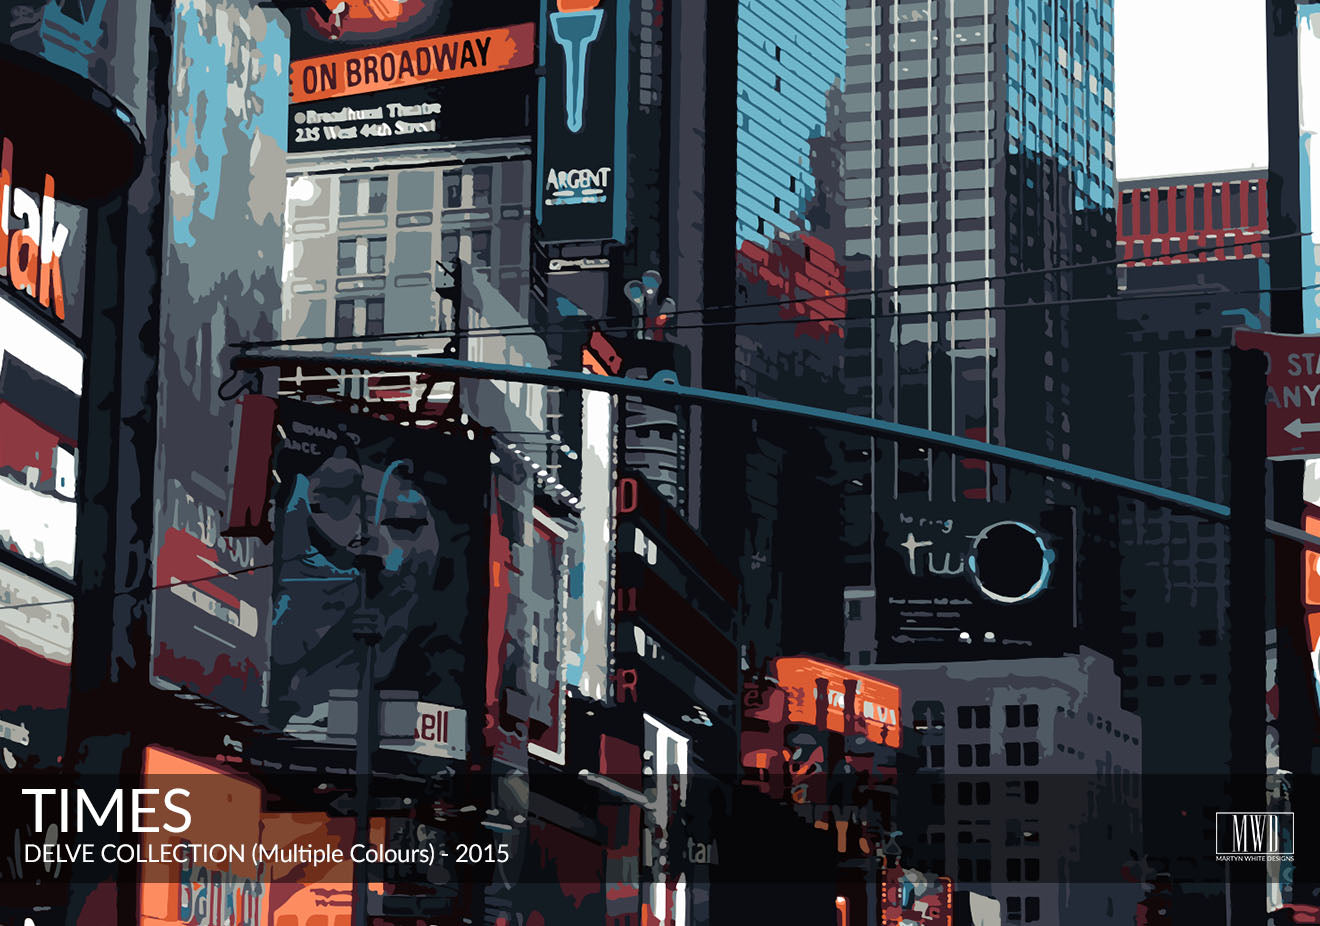 Abstract Times Square art Print New York Martyn White Designs Portfolio